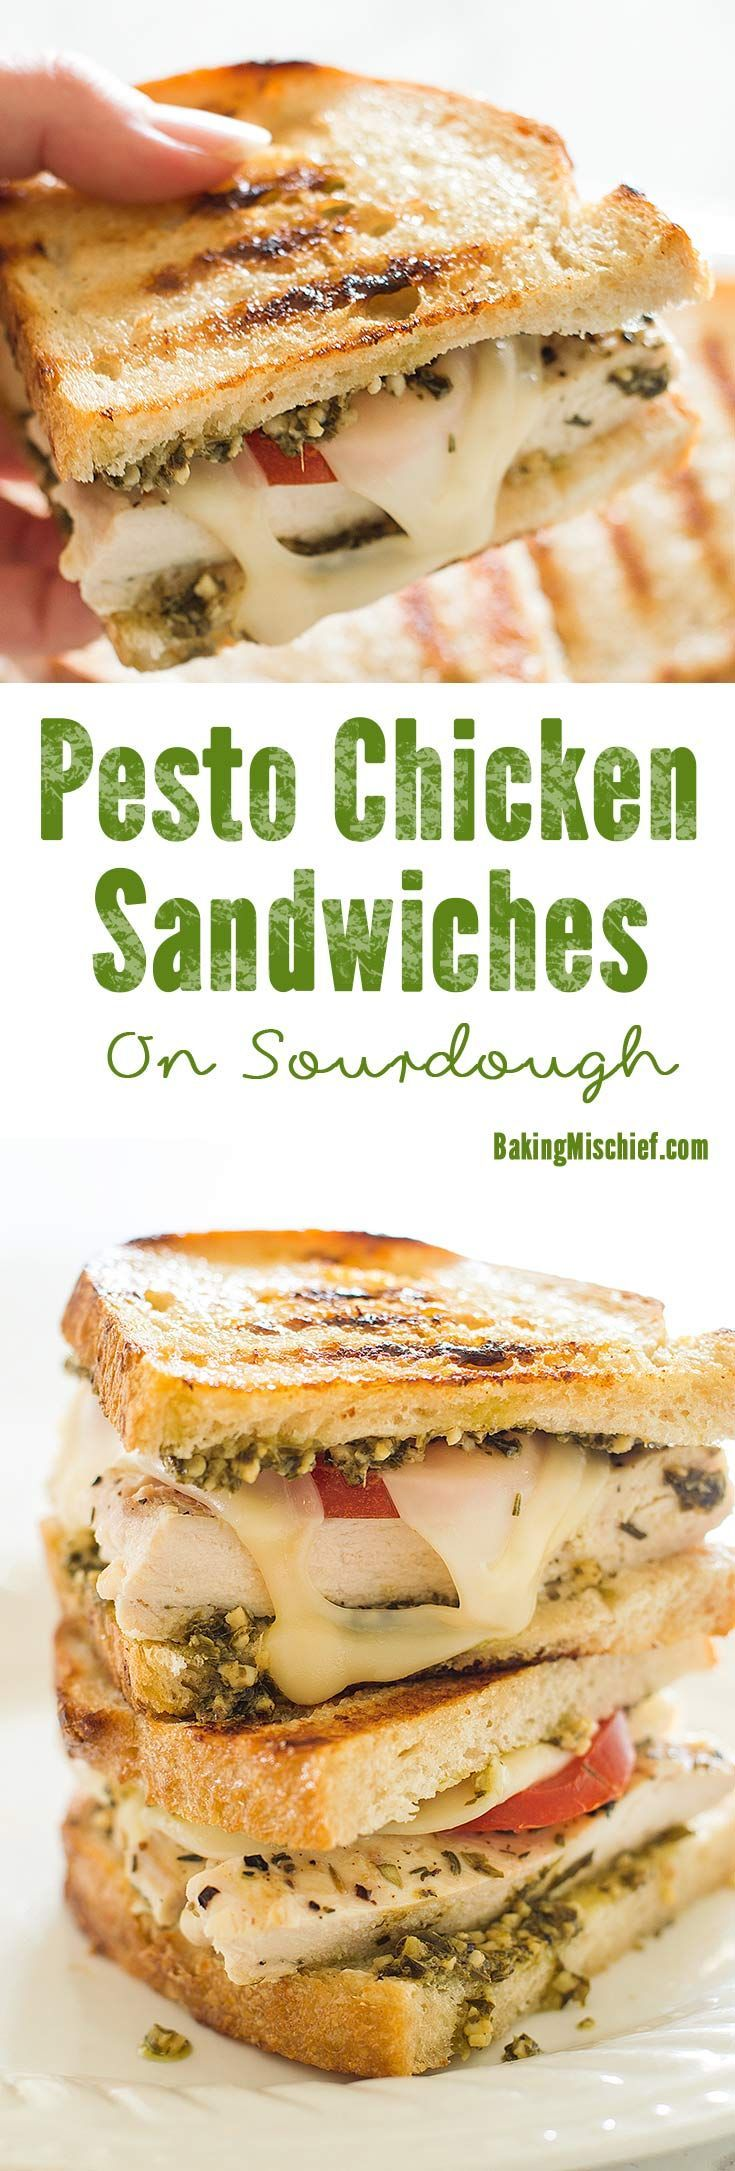 Sourdough, toasted in olive oil and topped with grilled chicken, pesto, Swiss cheese, and fresh tomatoes. A perfect easy and attractive dinner for guests or a cozy night in.